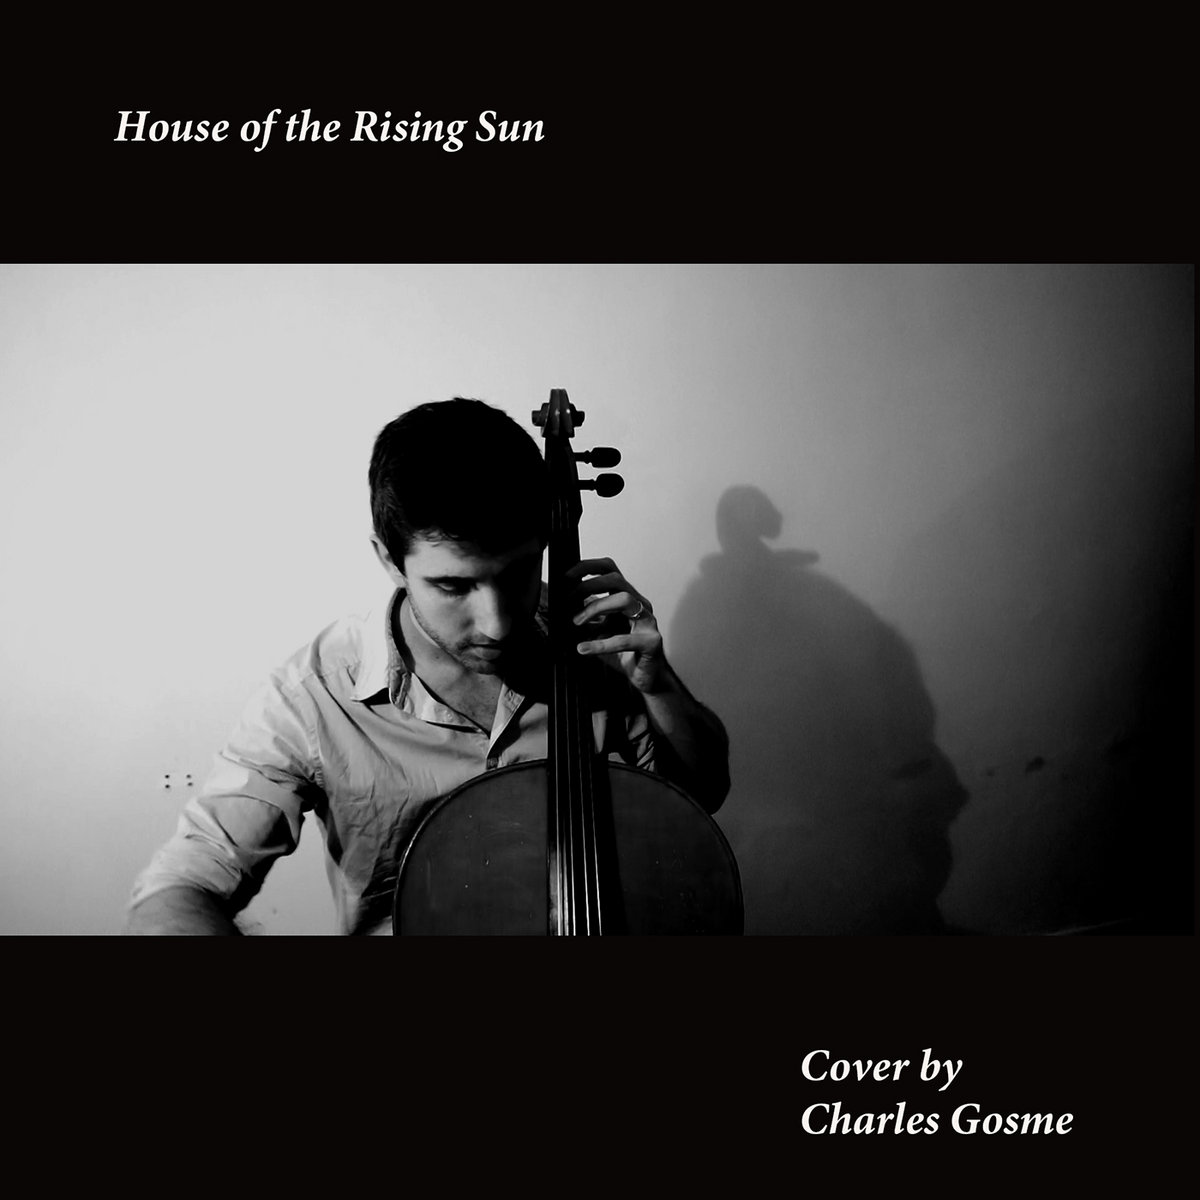 House of the Rising Sun (Cover) by Charles Gosme